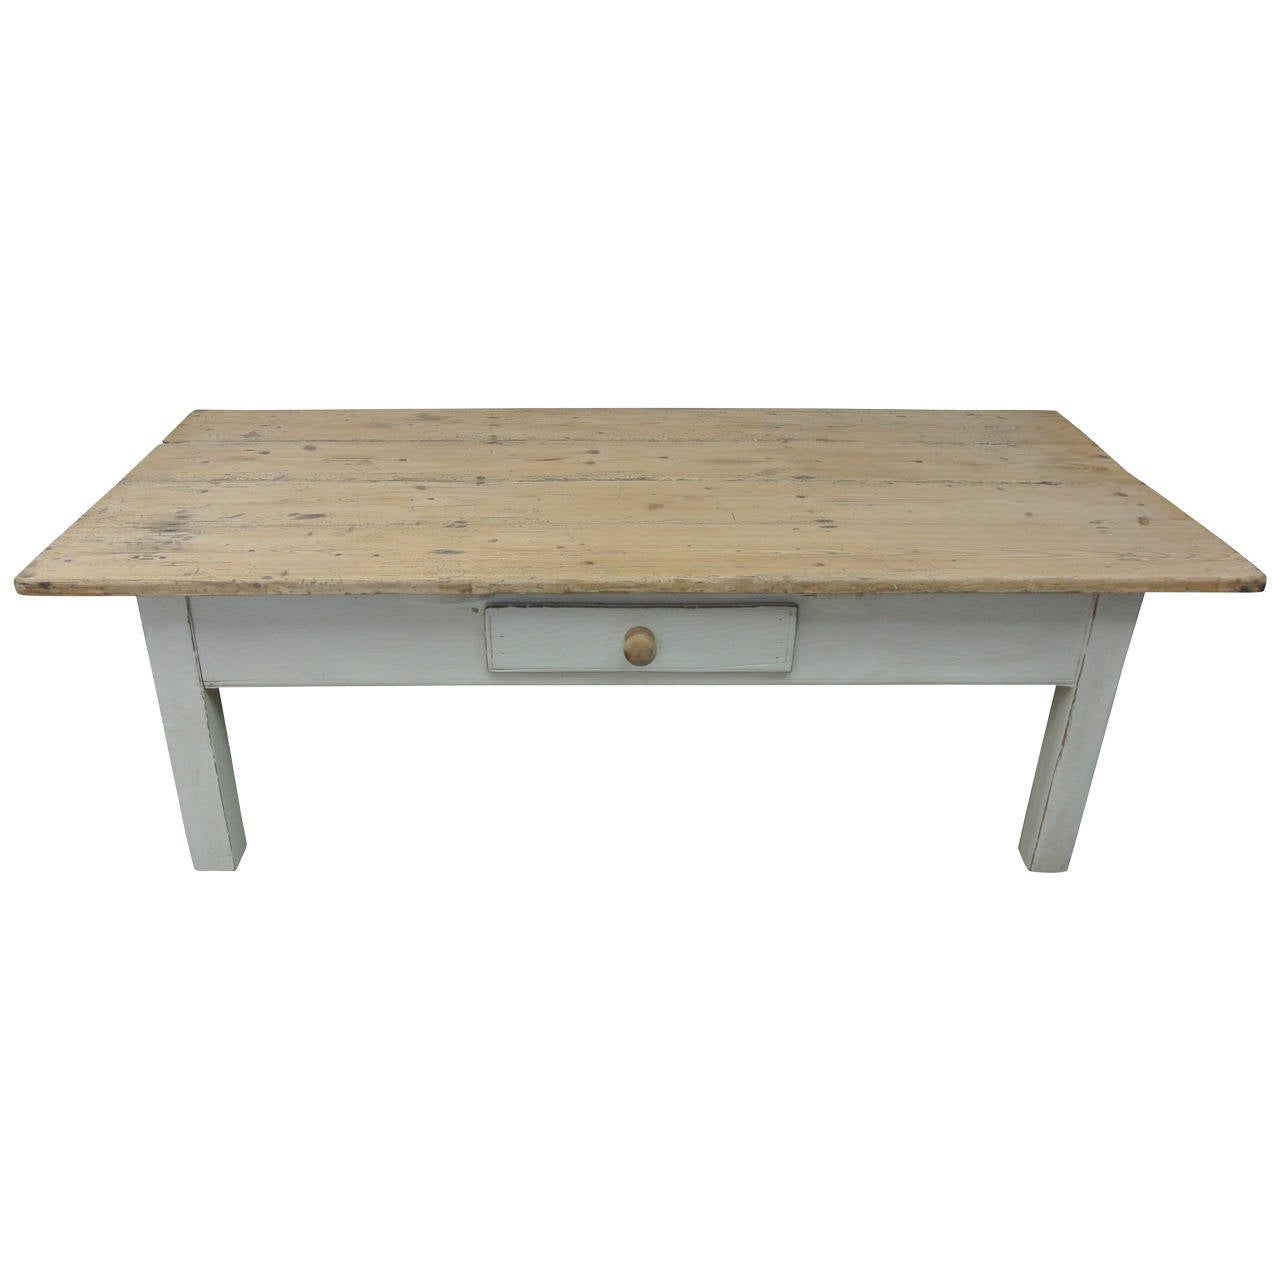 19th Century Painted Farmhouse Coffee Table At 1stdibs: painted coffee table